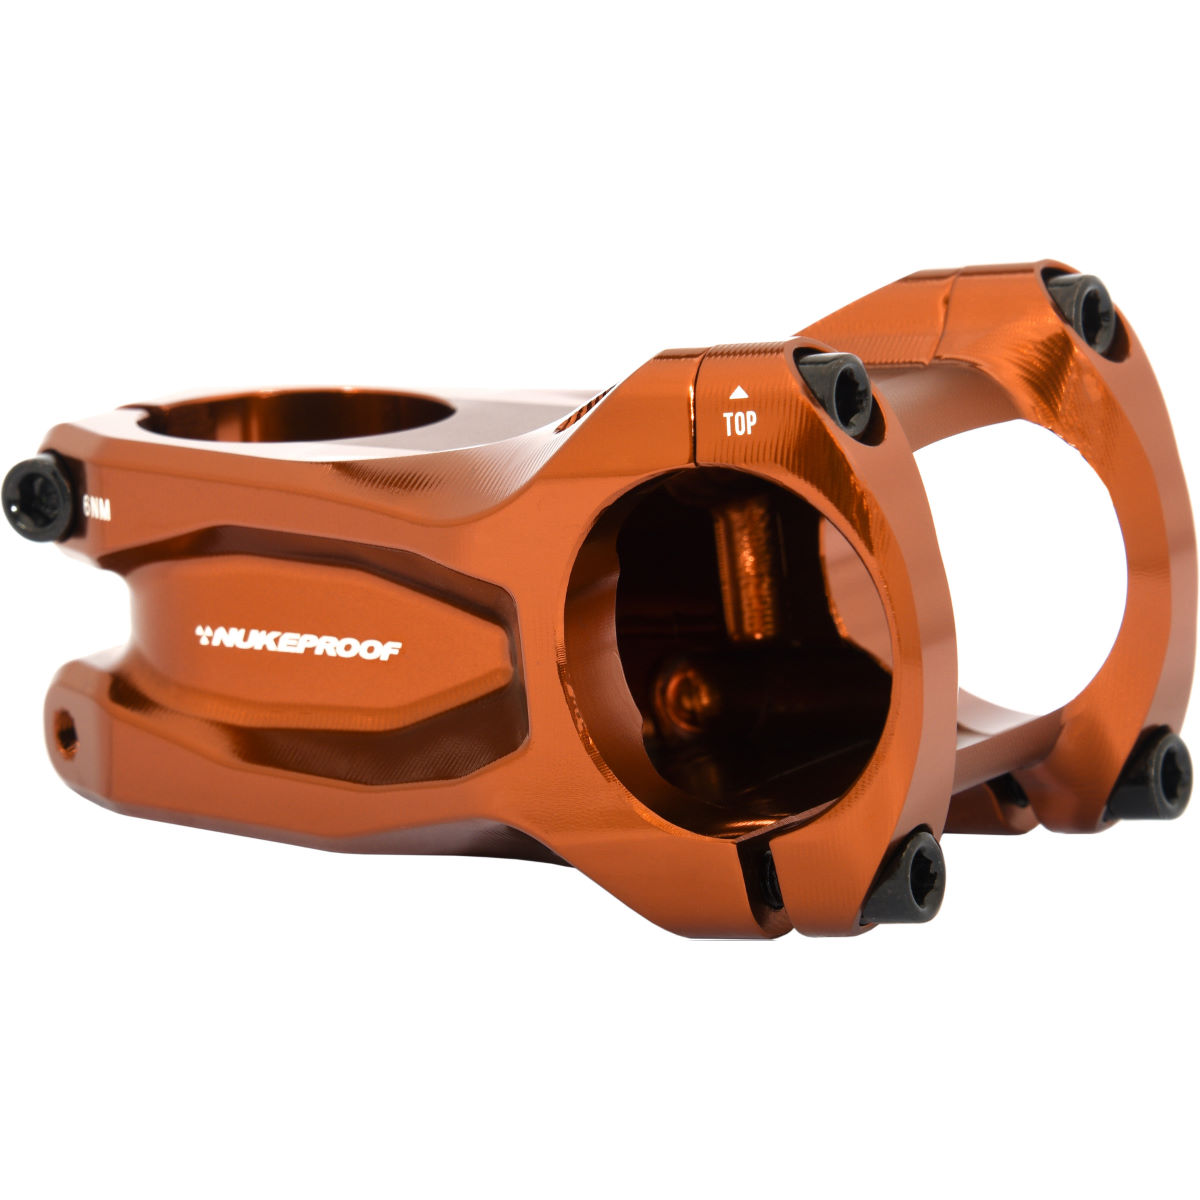 Potence Nukeproof Horizon - 35mm x 60mm Copper Potences